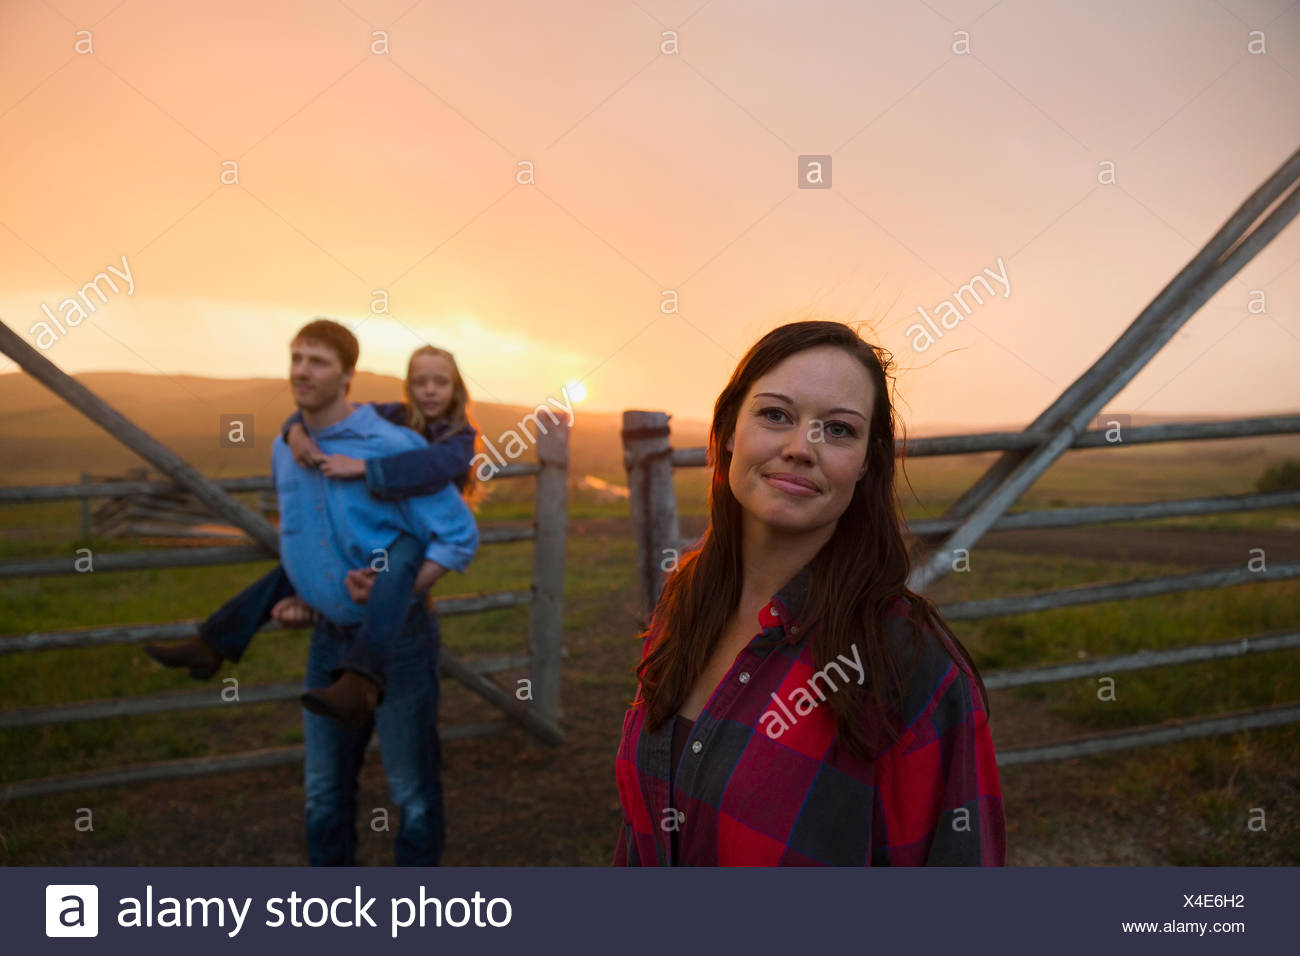 Woman with family in pasture at sunset - Stock Image